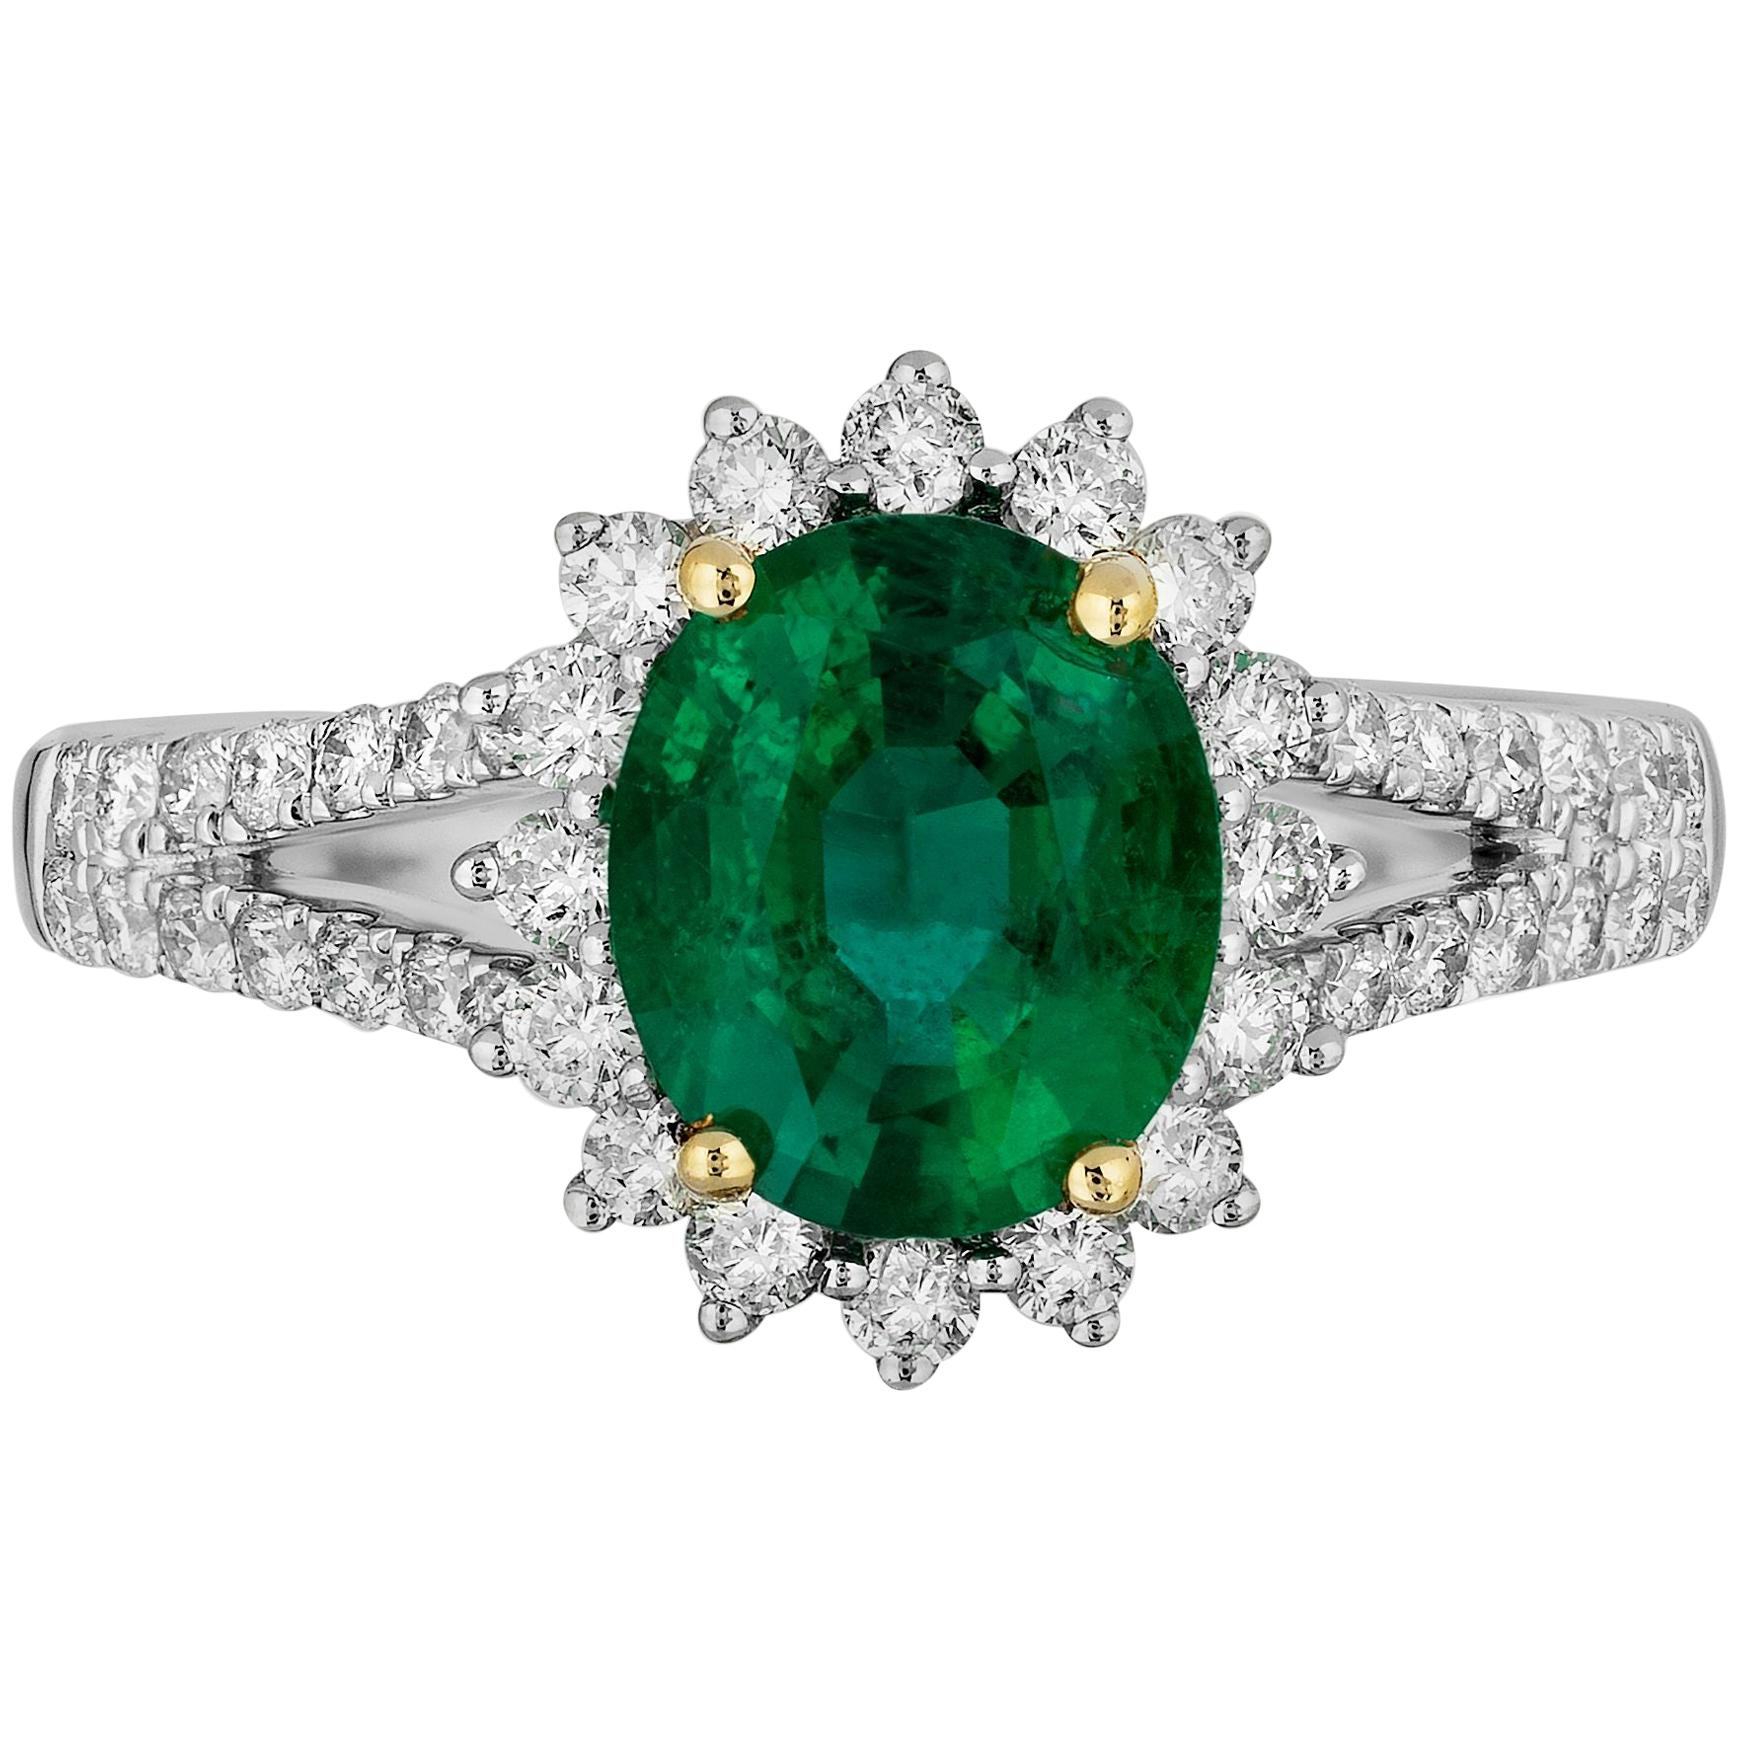 1.67 Carat Emerald Diamond Cocktail Ring